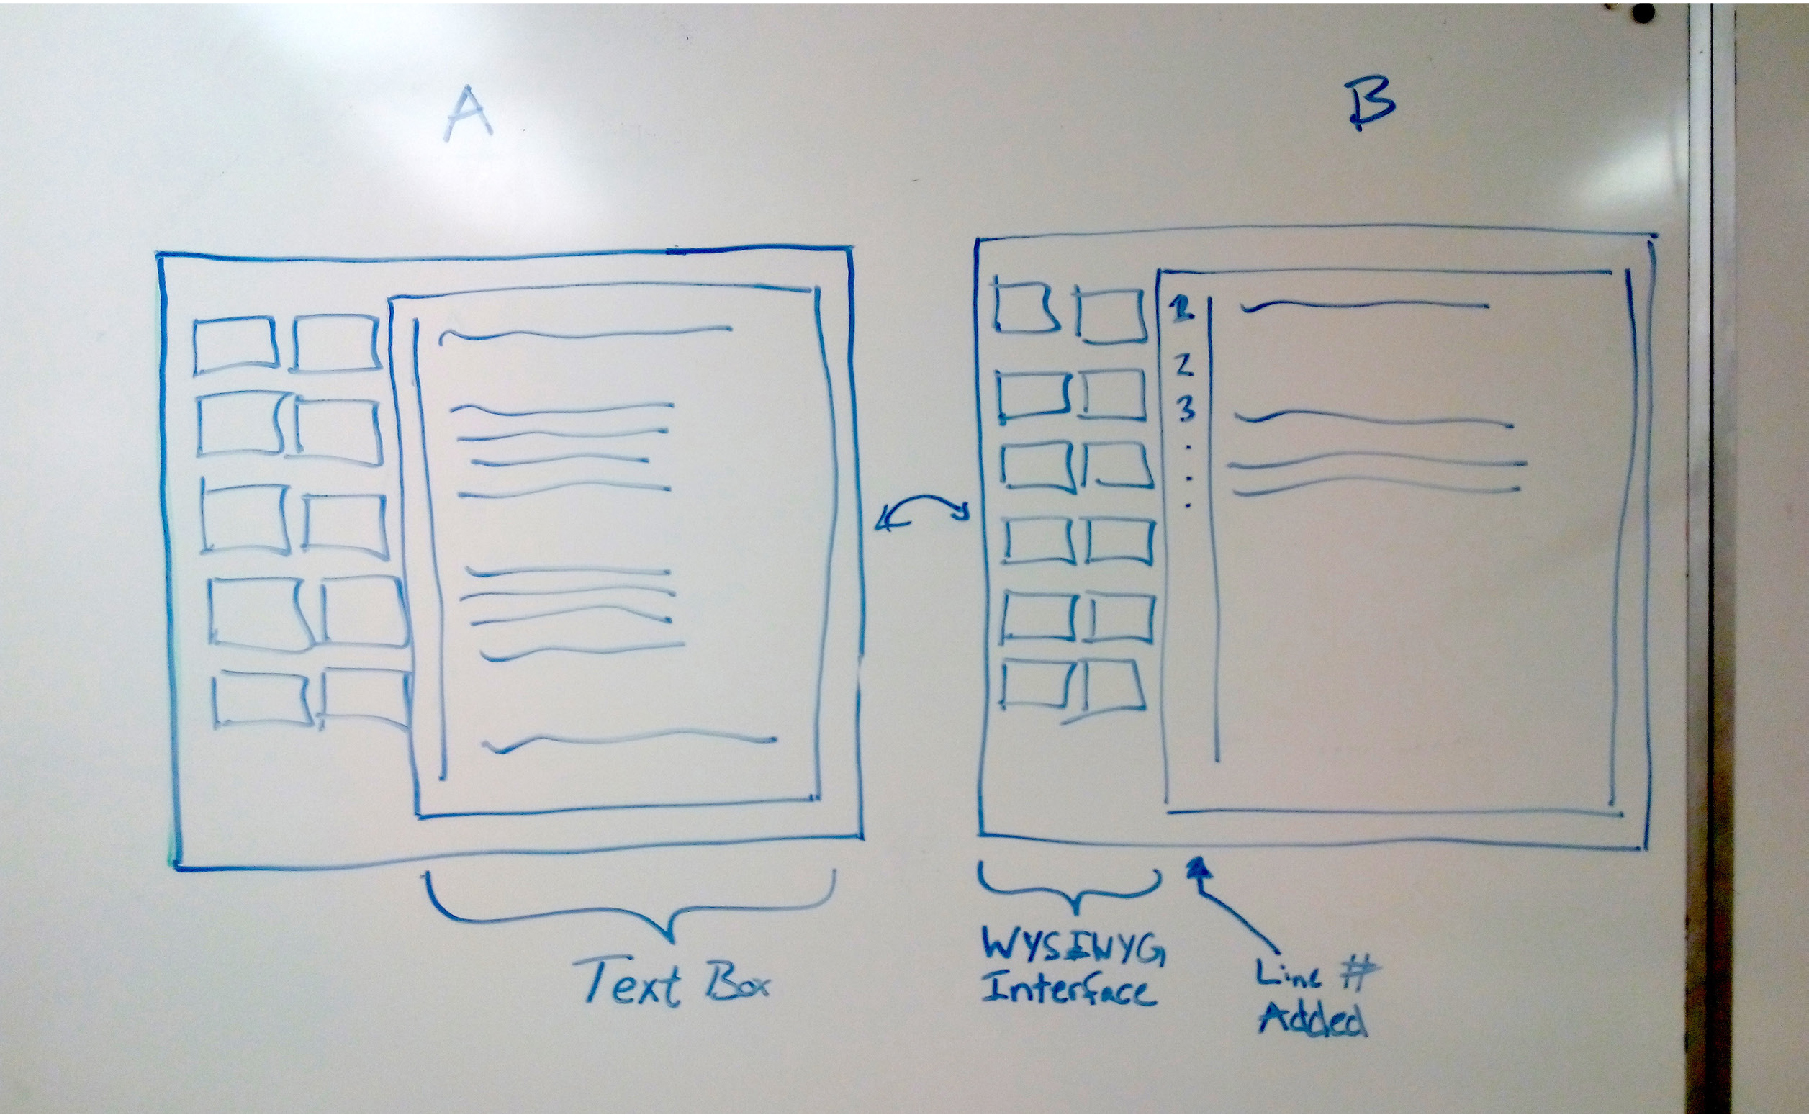 Initial interface sketches.